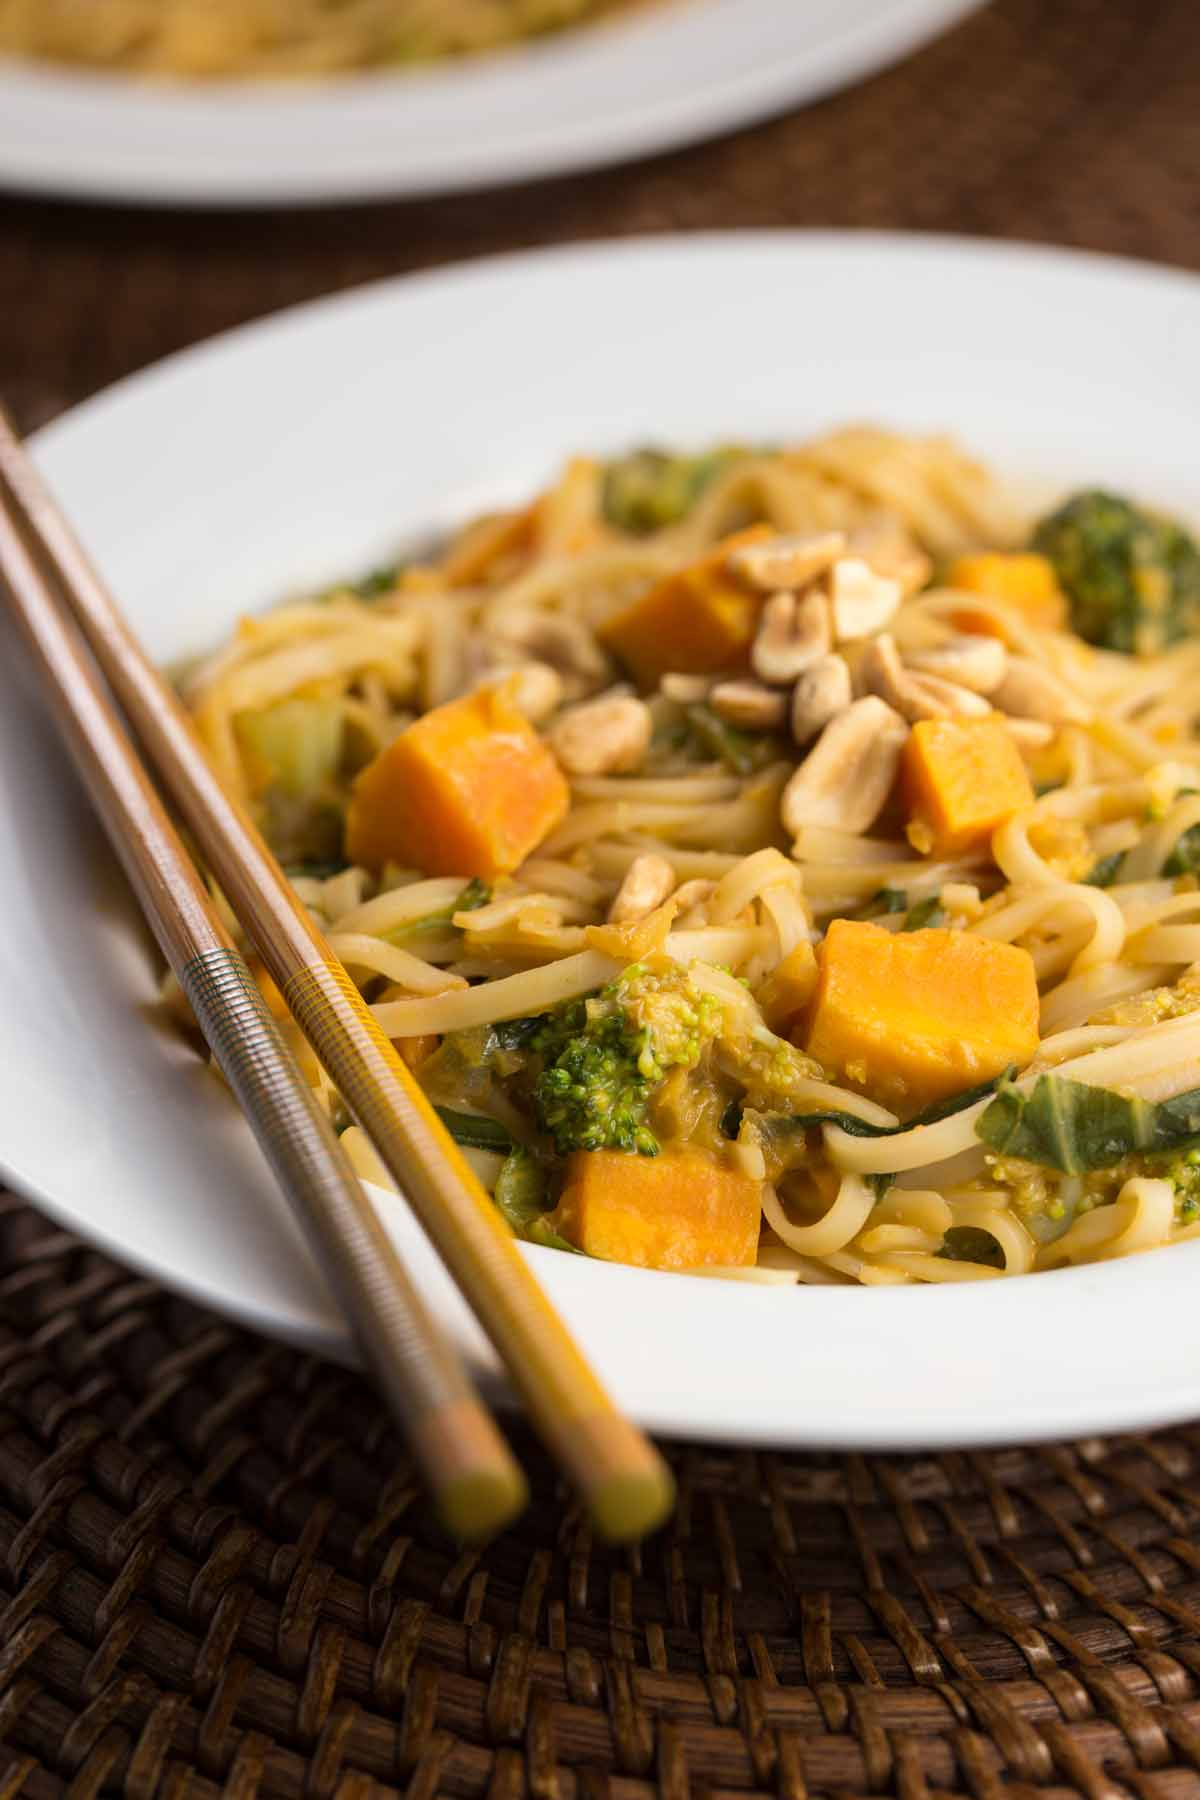 Sweet Potato Noodle Bowl with Peanut Sauce | via veggiechick.com #vegan #glutenfree #oilfree